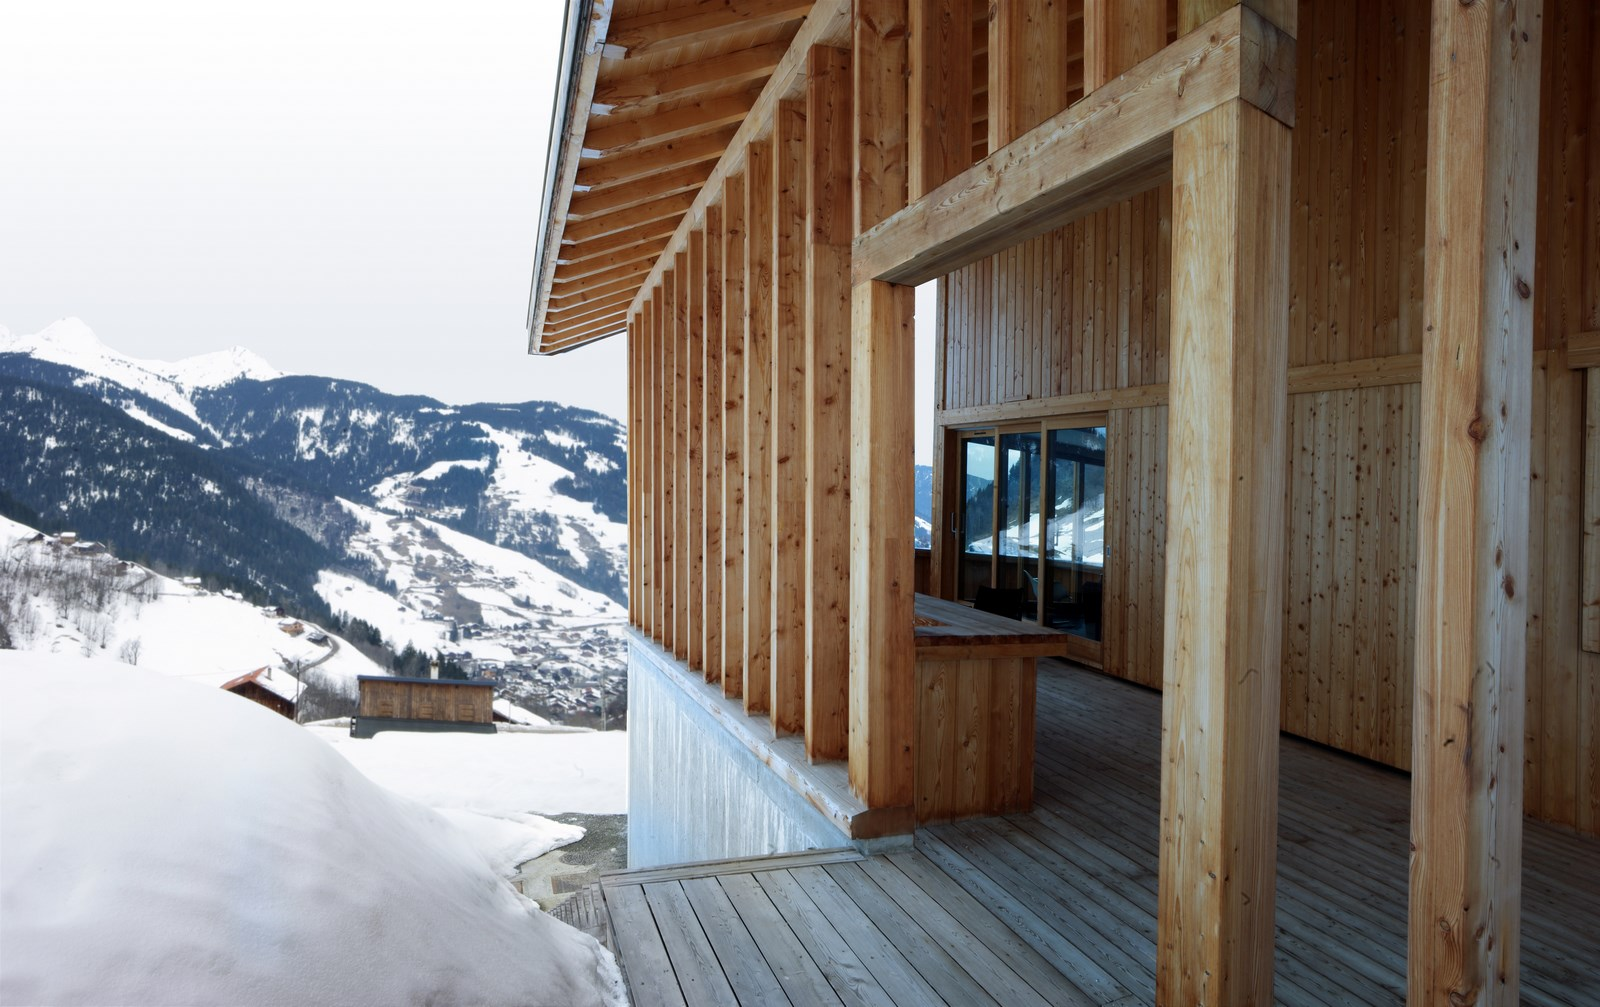 Chalet les g r ts ar ches beaufort 73 maaj for Chalet tardy